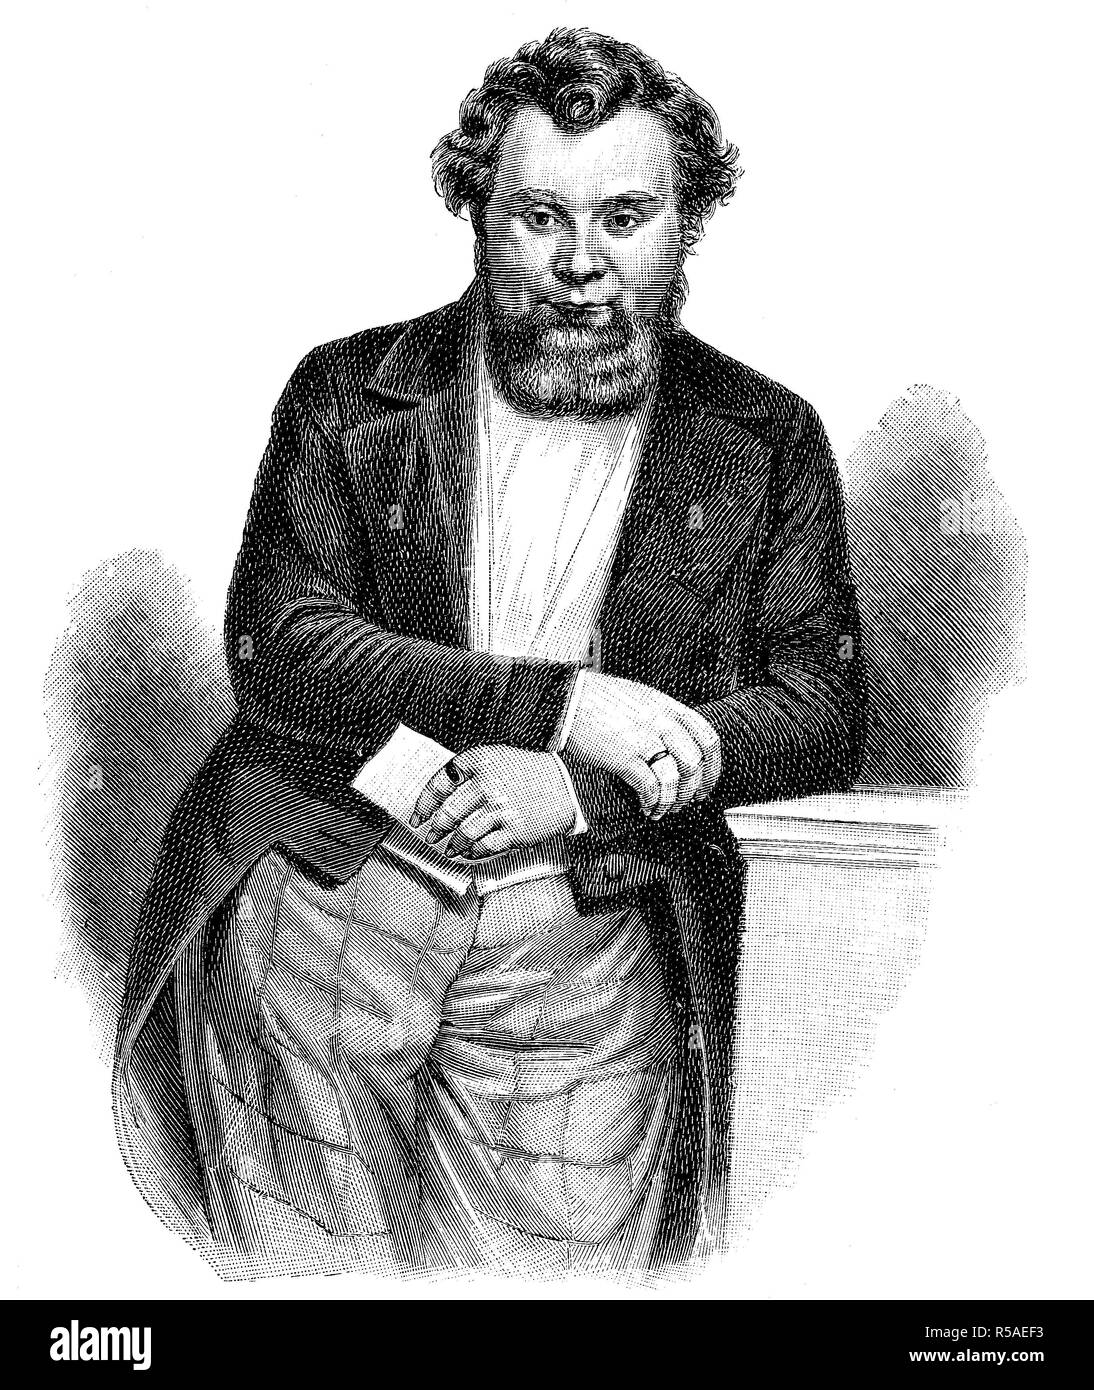 Robert Blum, 10 November 1807, 9 November 1848, politician, publicist, publisher and poet, woodcut, Germany - Stock Image